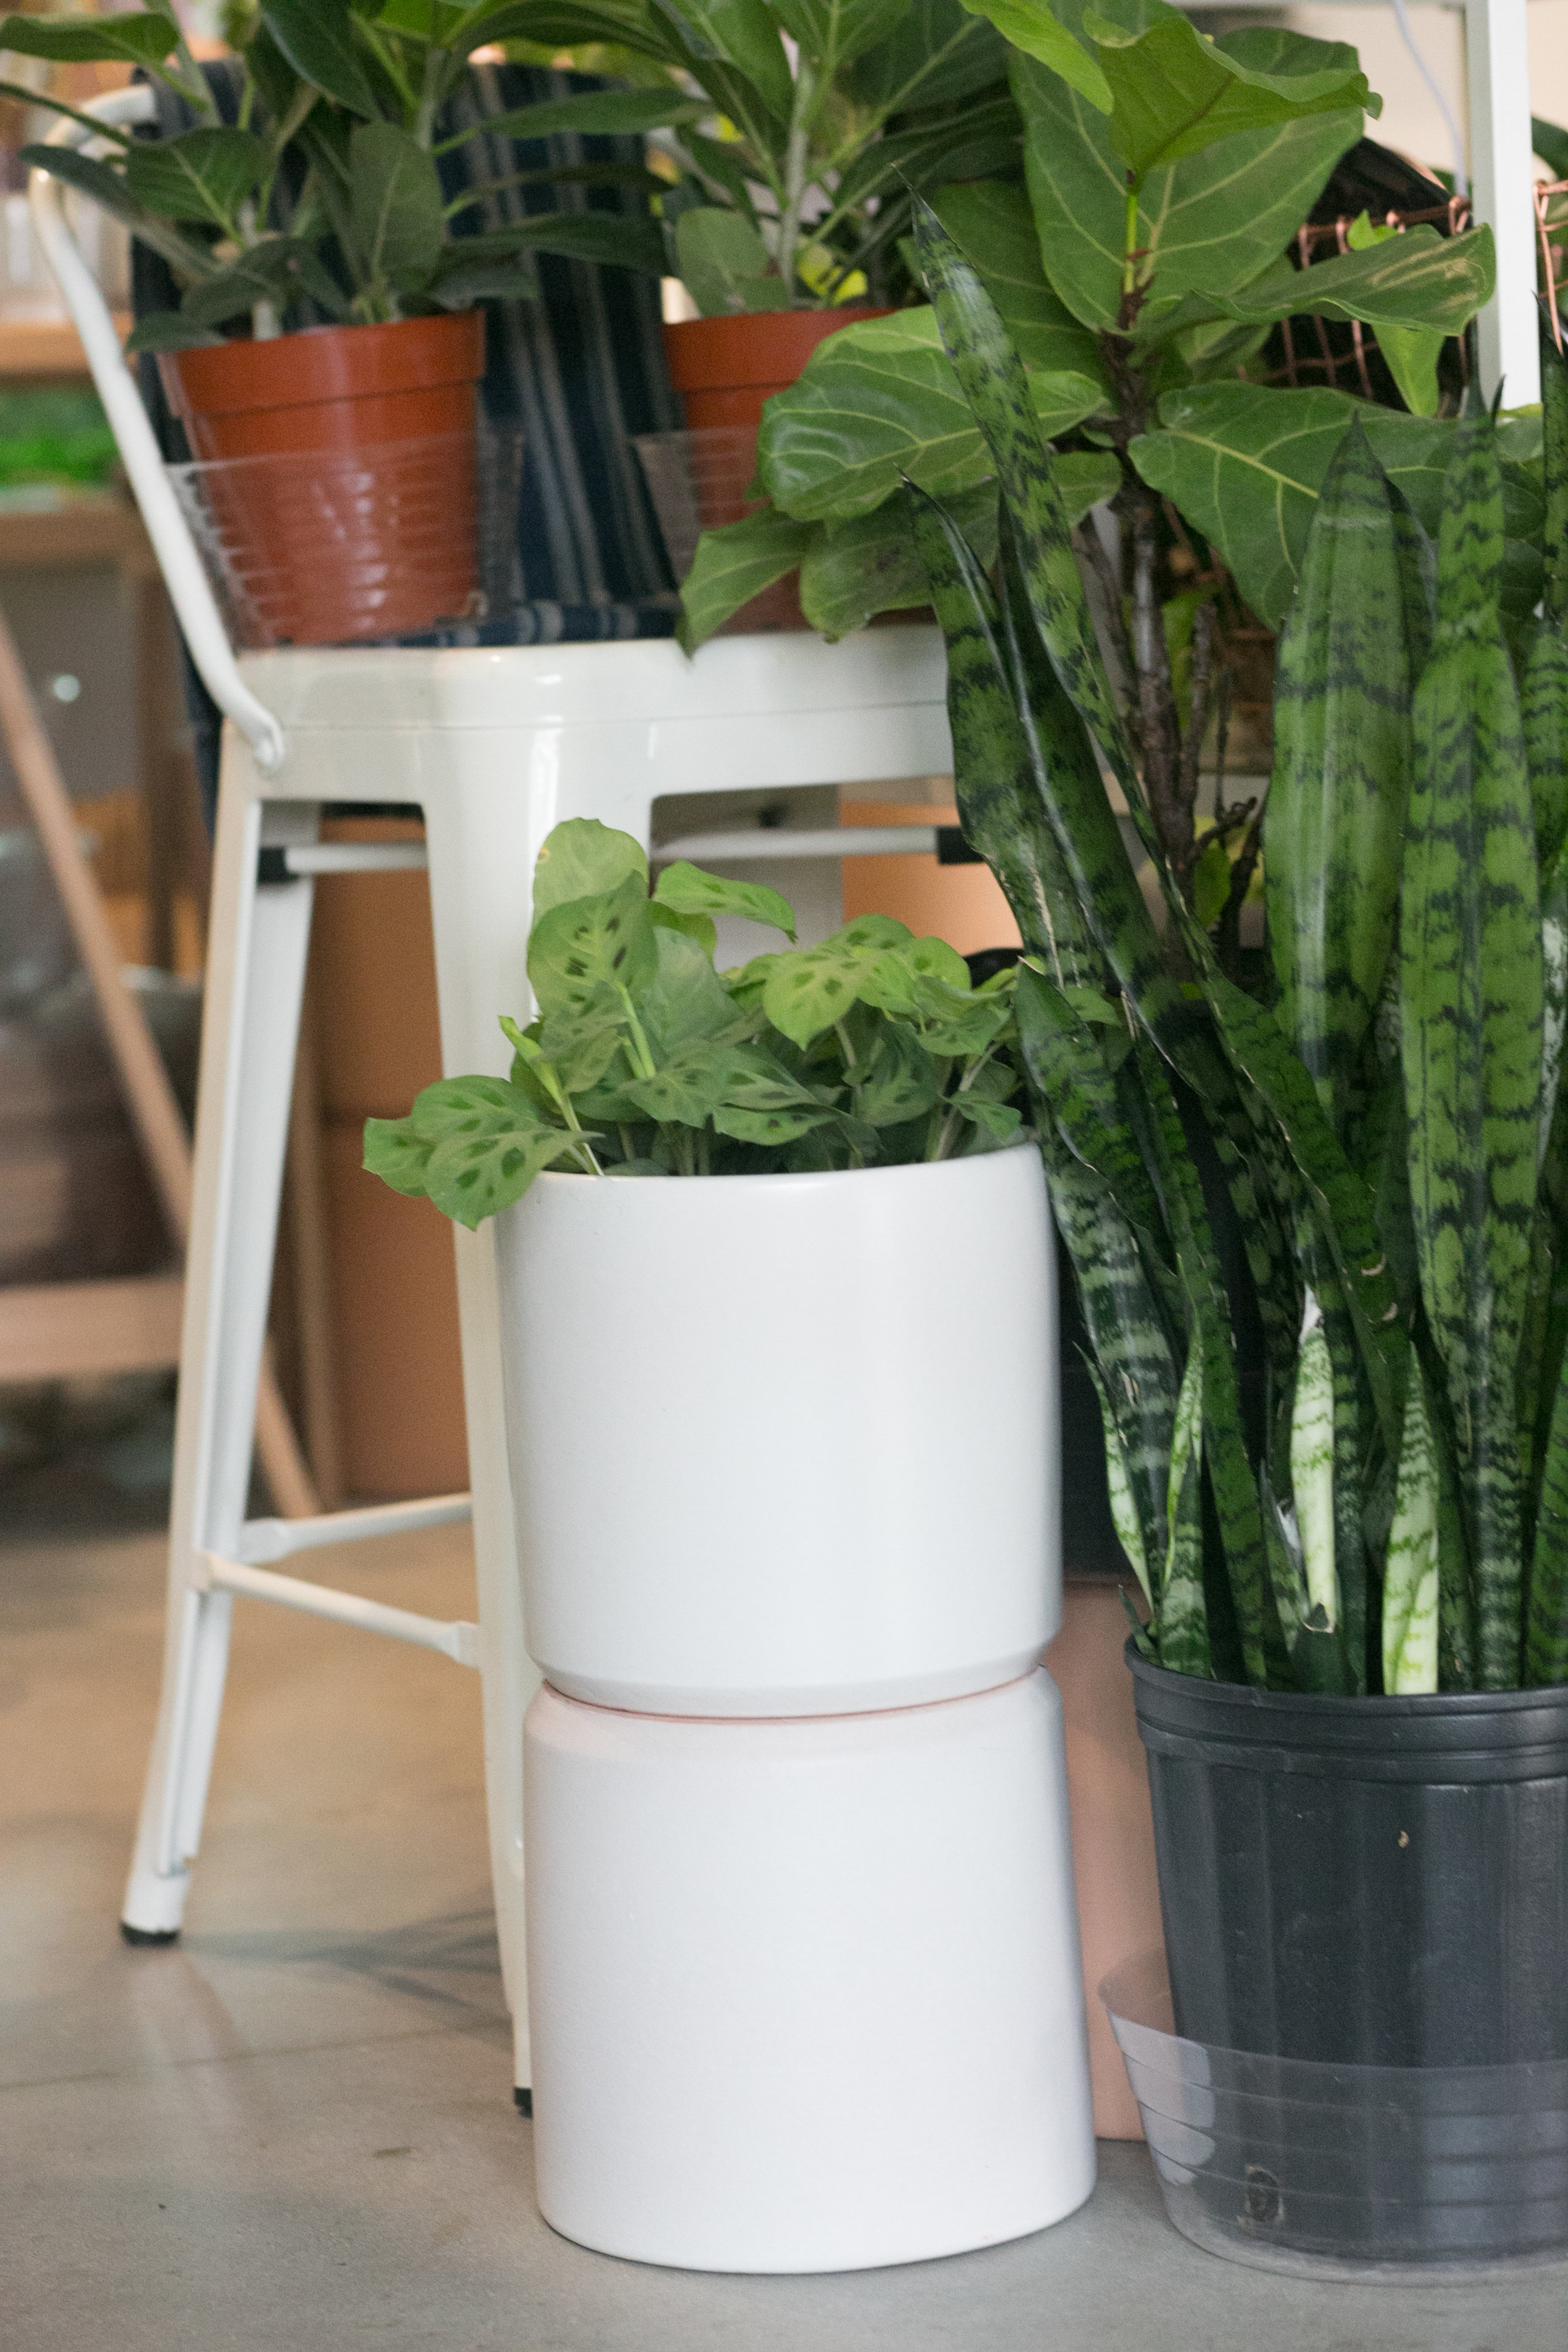 We love a prayer plant in a white pot - the contrast really makes the leaves pop.